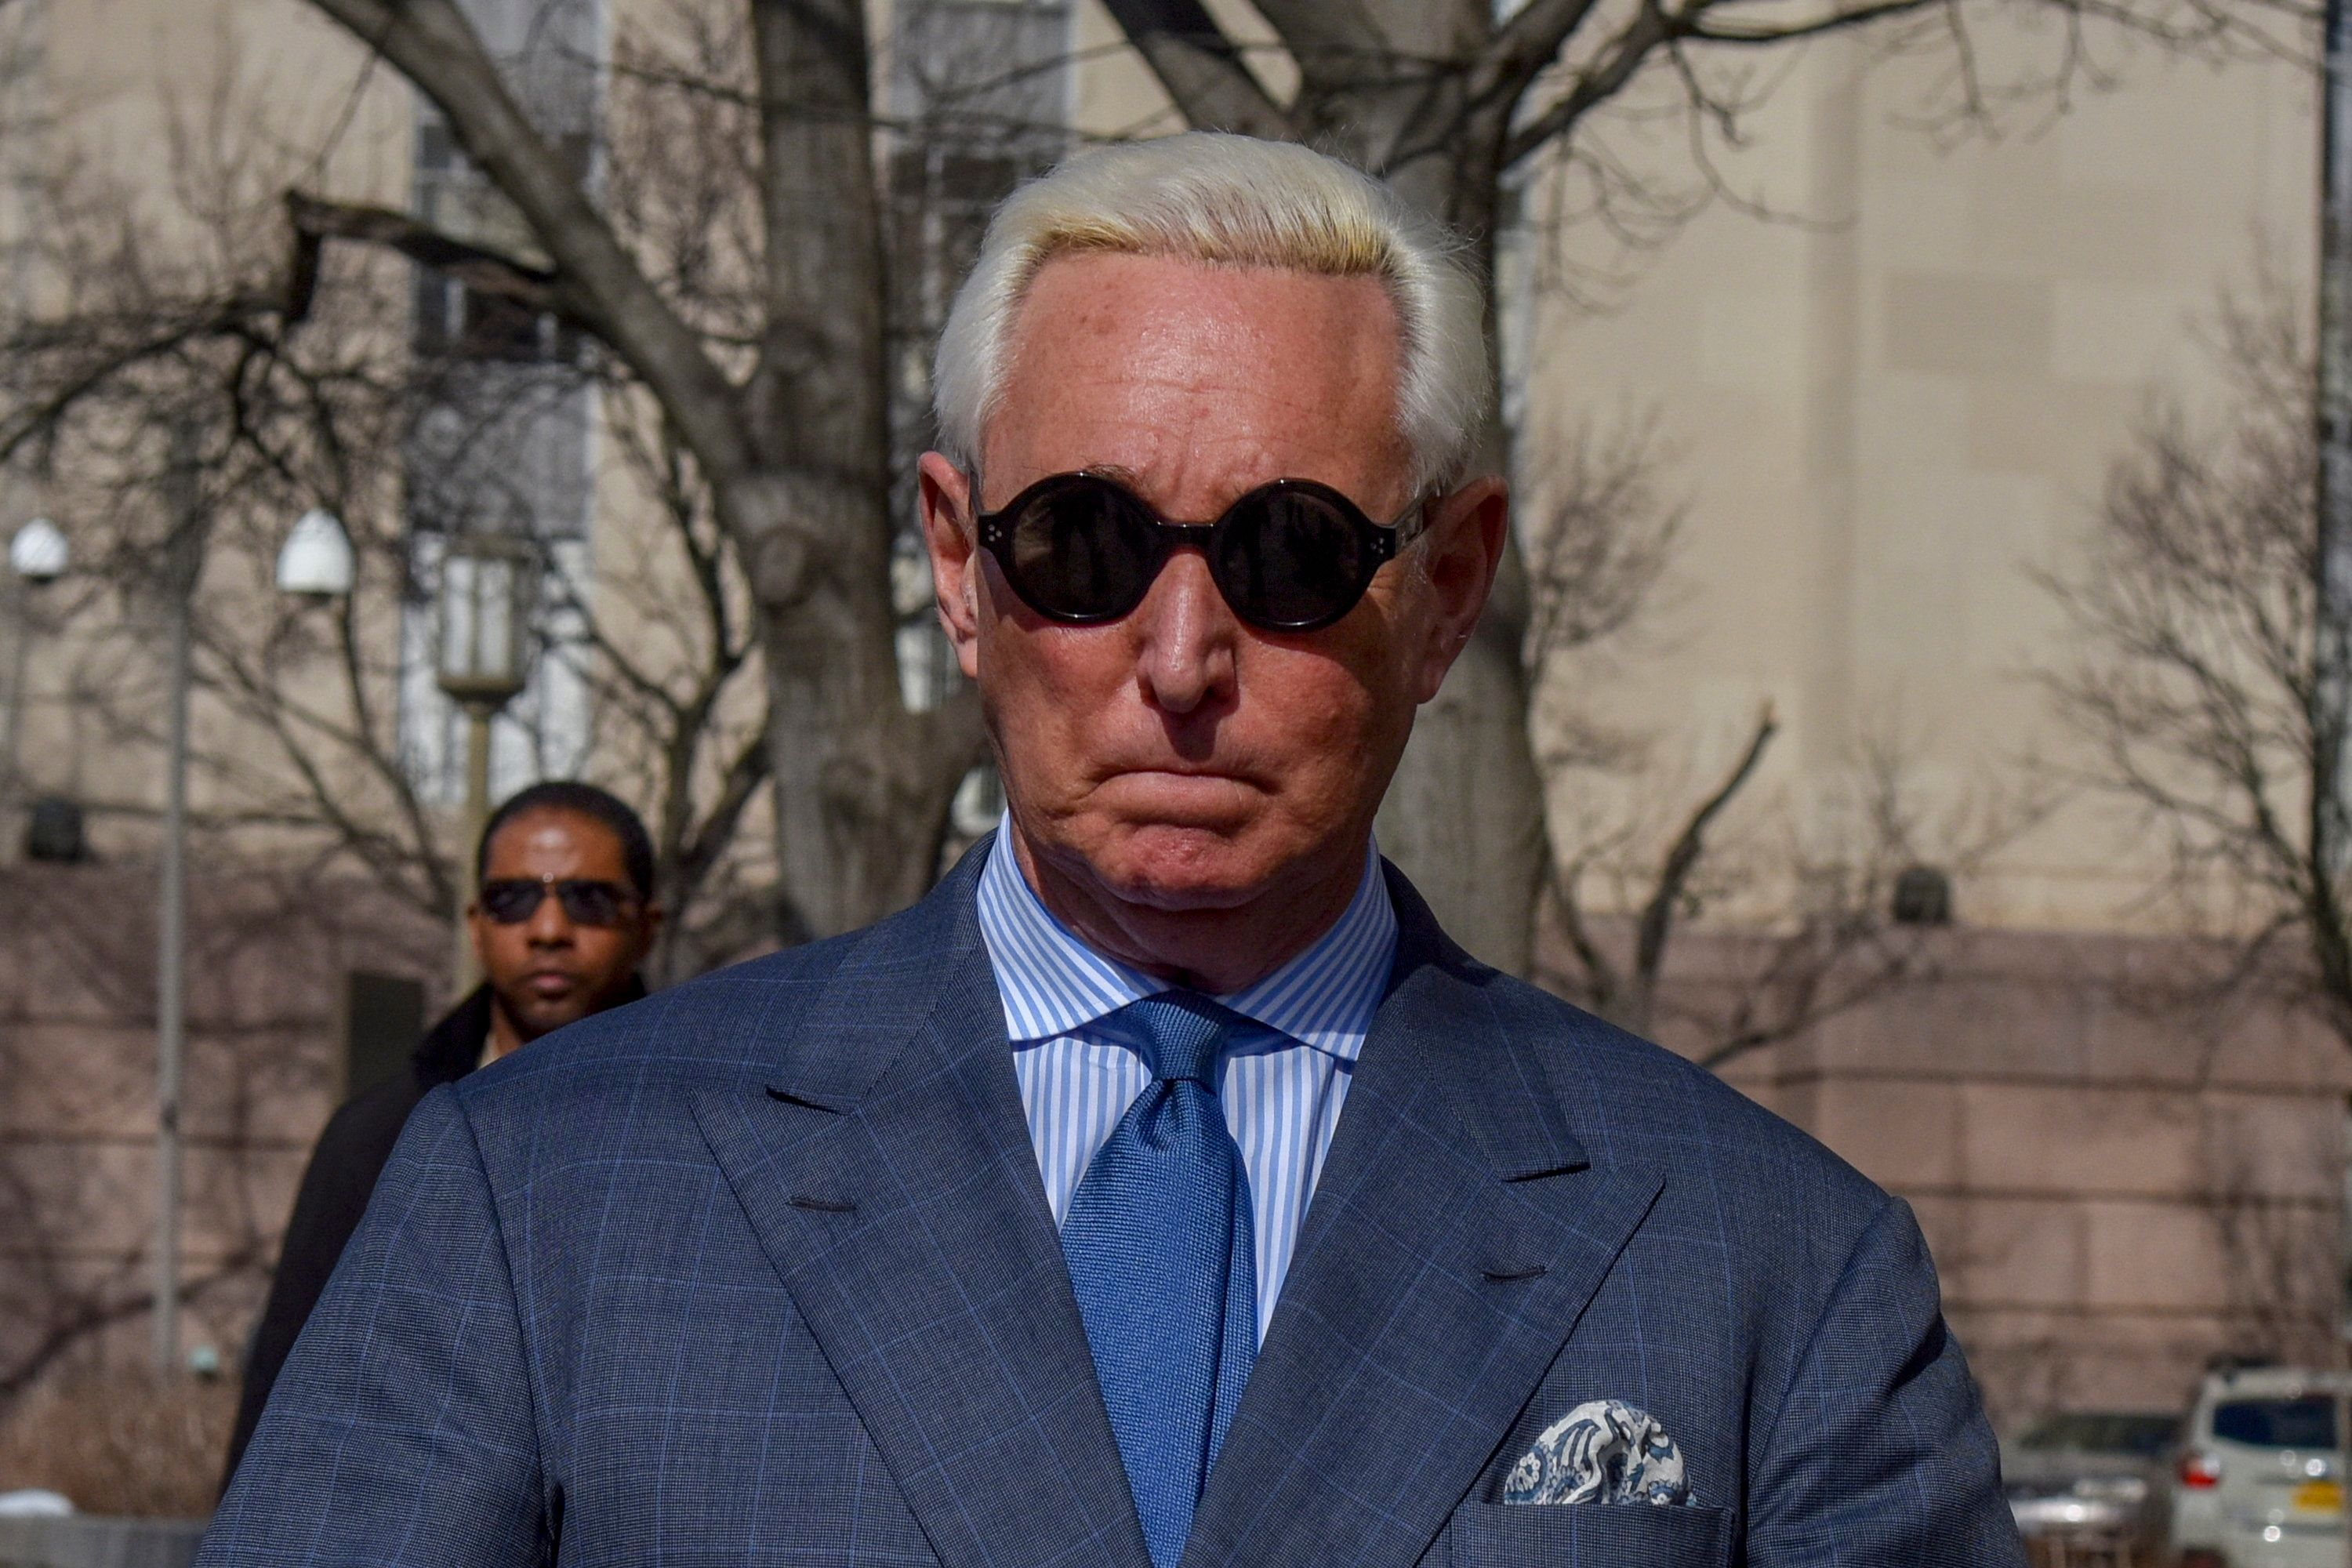 Judge Slaps Roger Stone Over Instagram Posts, Book Criticizing Mueller Probe